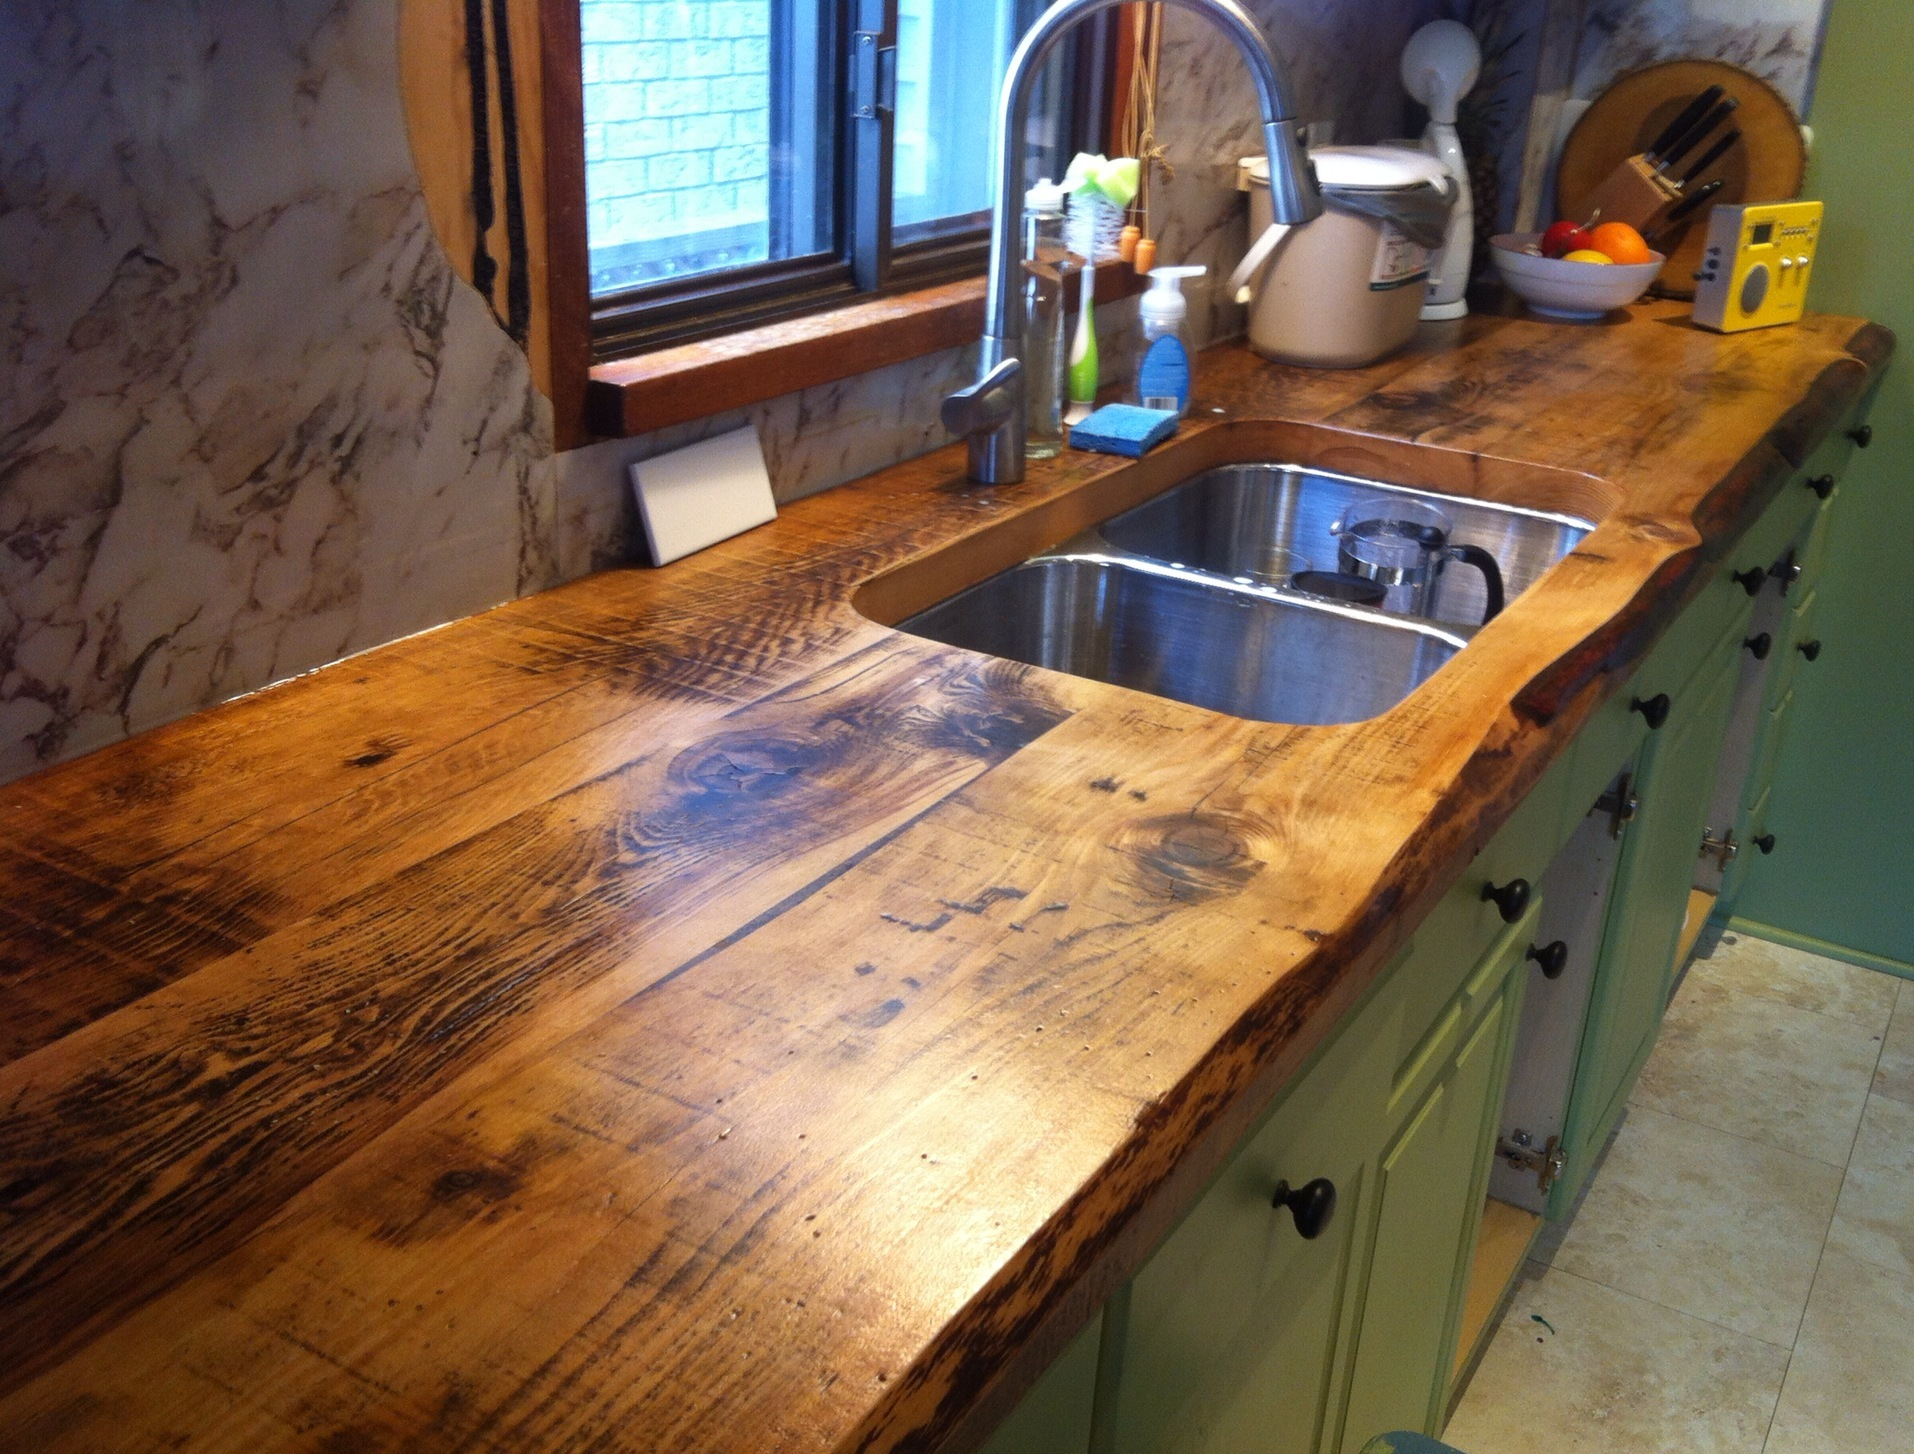 Top 15 Kitchen Countertops Costs And Pros Cons 2019 Home